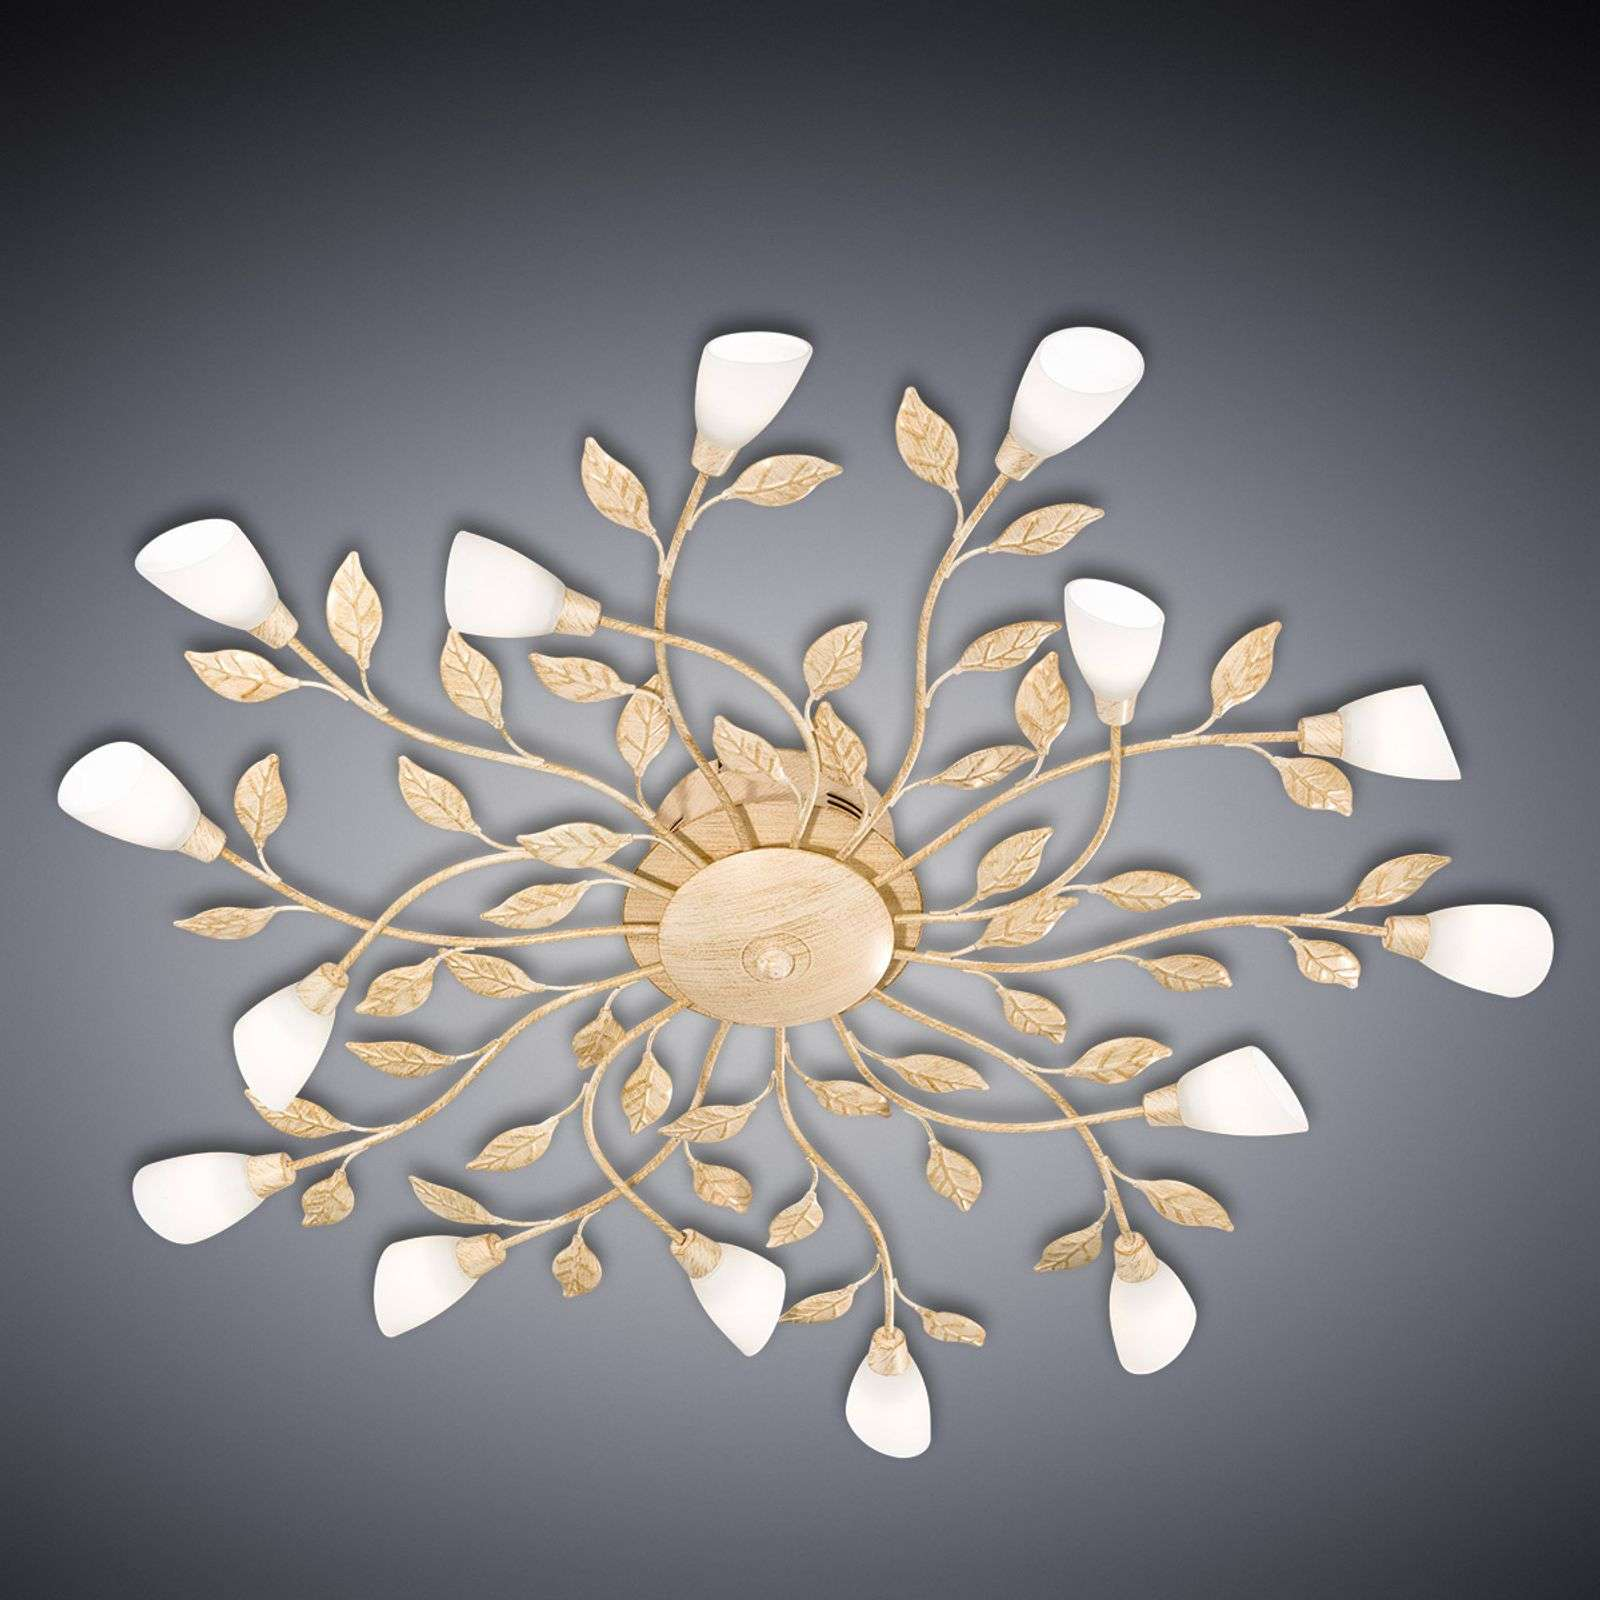 Plafonnier LED Jela florentin blanc antique